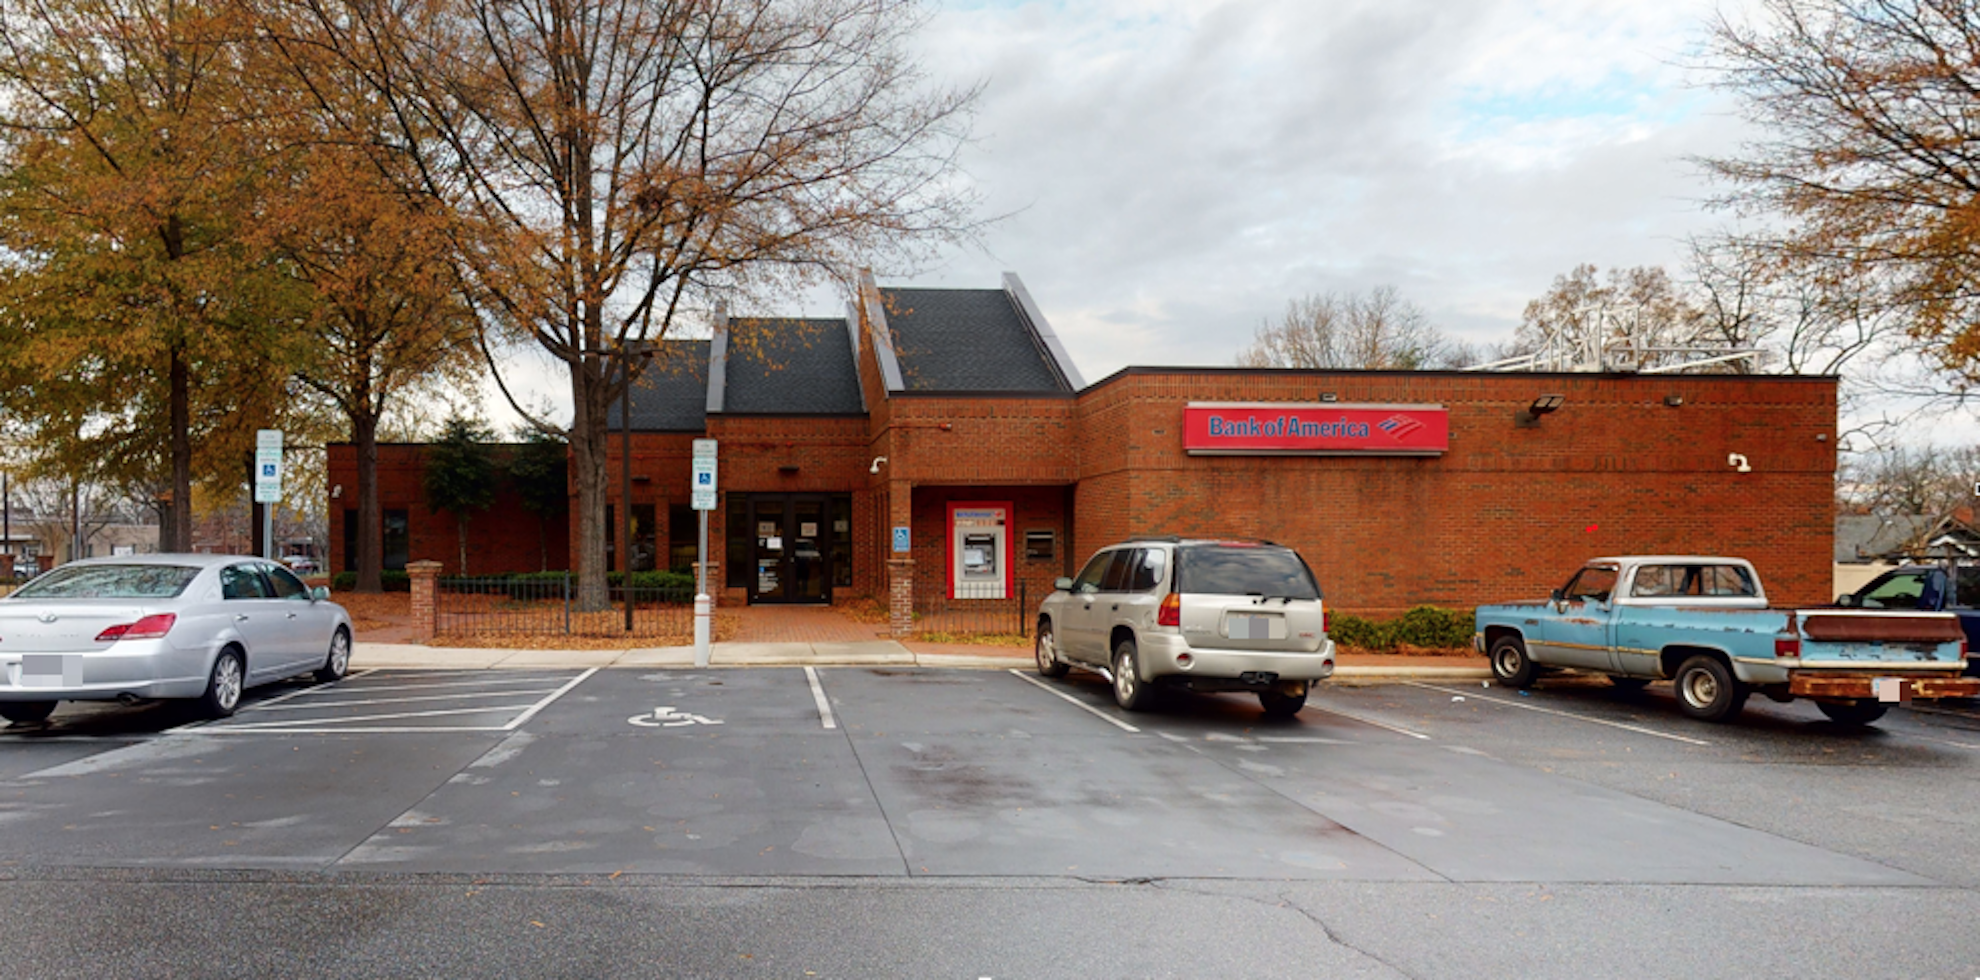 Bank of America financial center with drive-thru ATM and teller   500 W Innes St, Salisbury, NC 28144